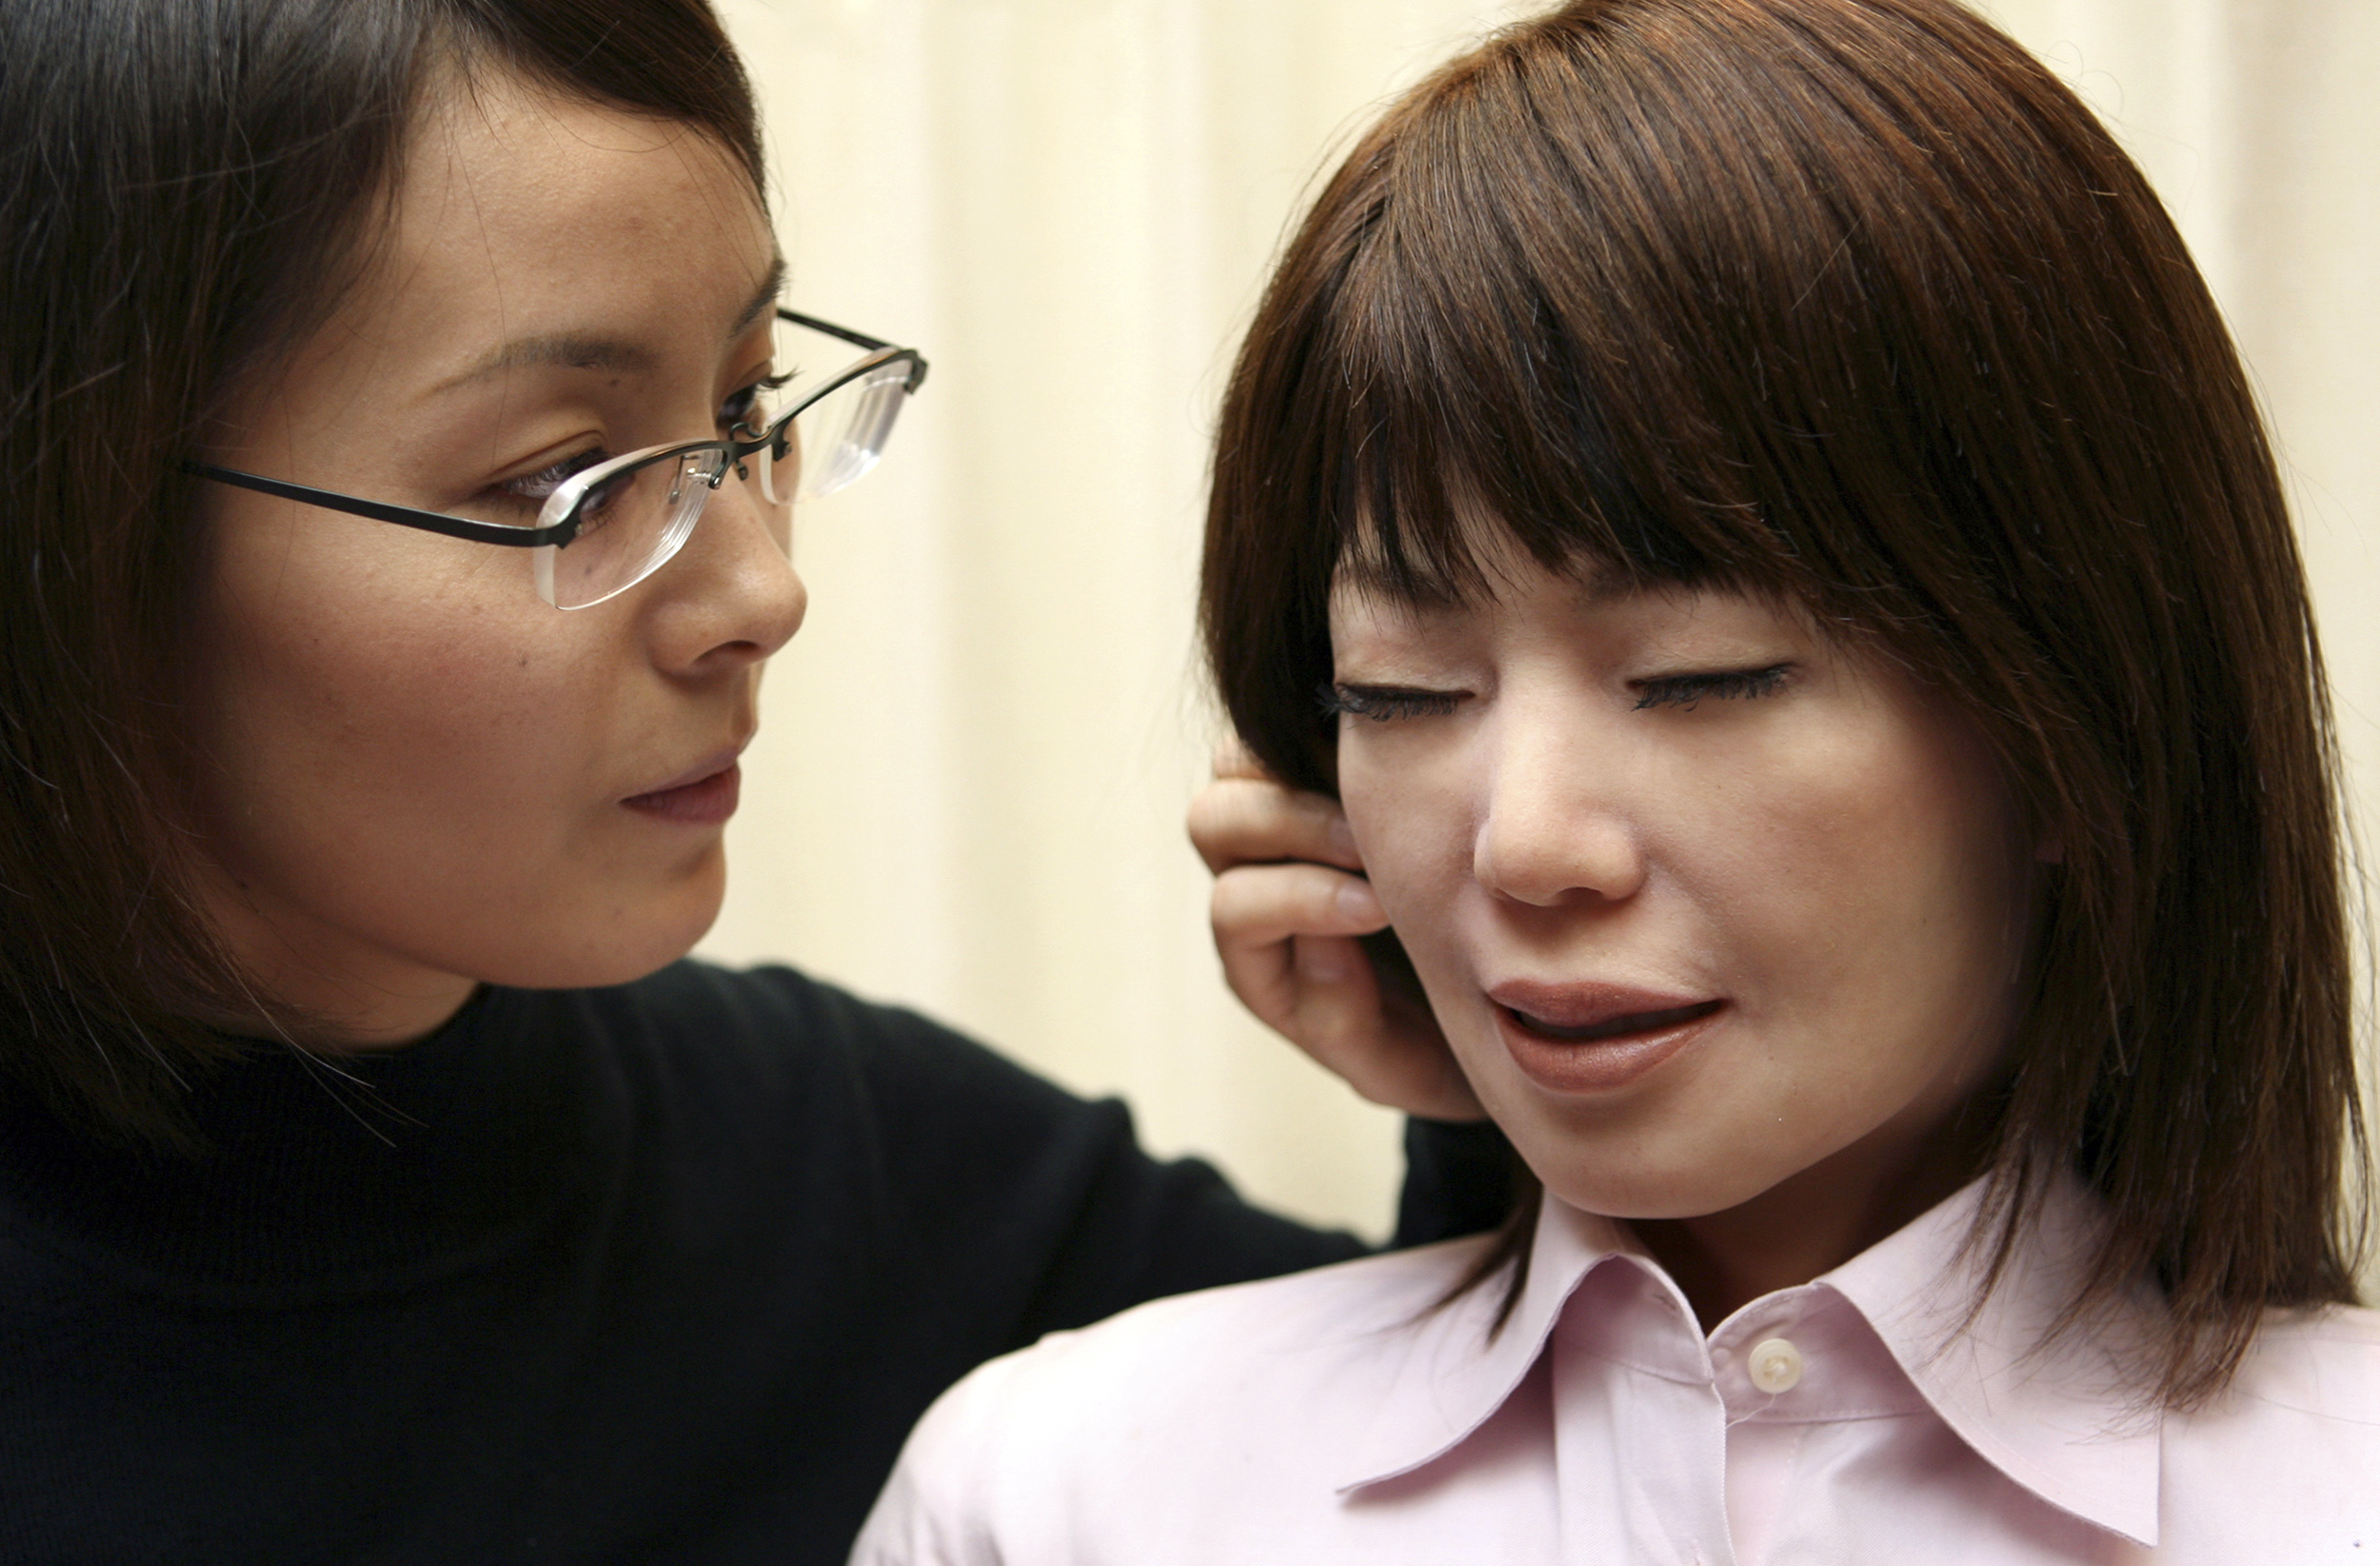 Andoroid Repliee Q2 (R) reacts as graduate student Motoko Noma touches her face at an exhibition during Core Technology Symposium in Tokyo on October 31, 2006.